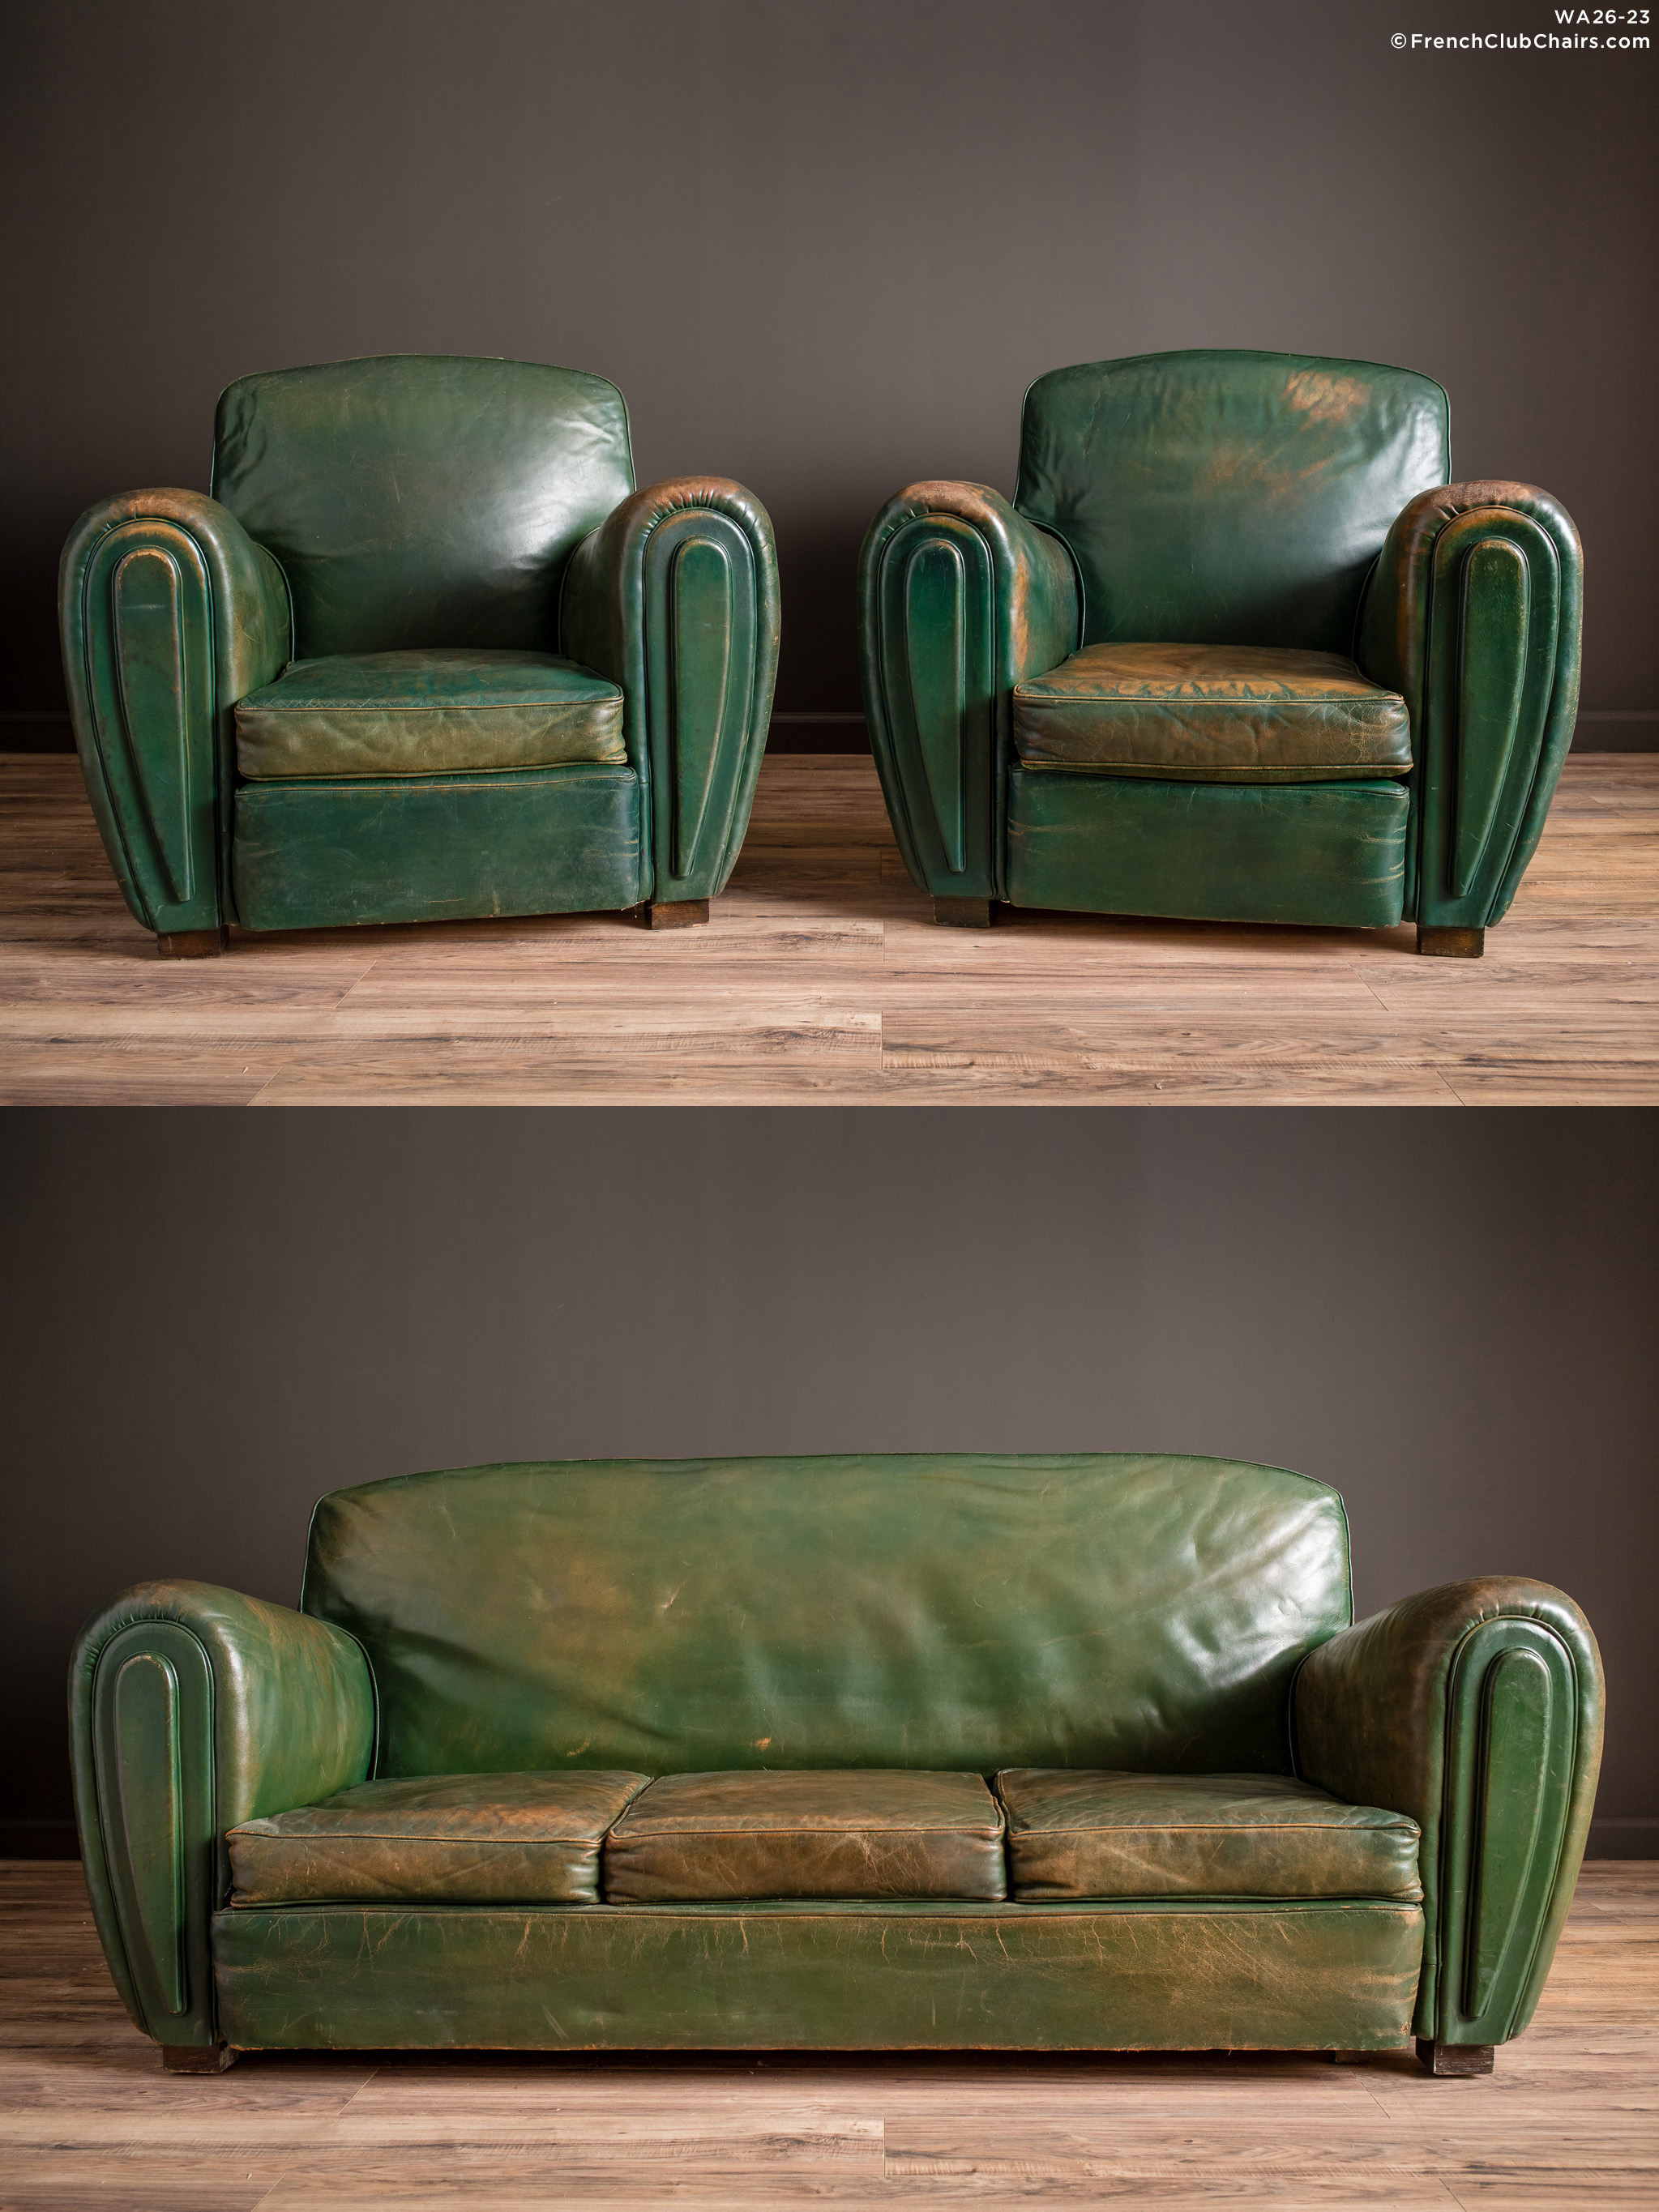 WA_26-23_Chairs_Green_Salon_LibraryCouch_R_1TQ-v01-williams-antiks-leather-french-club-chair-wa_fcccom